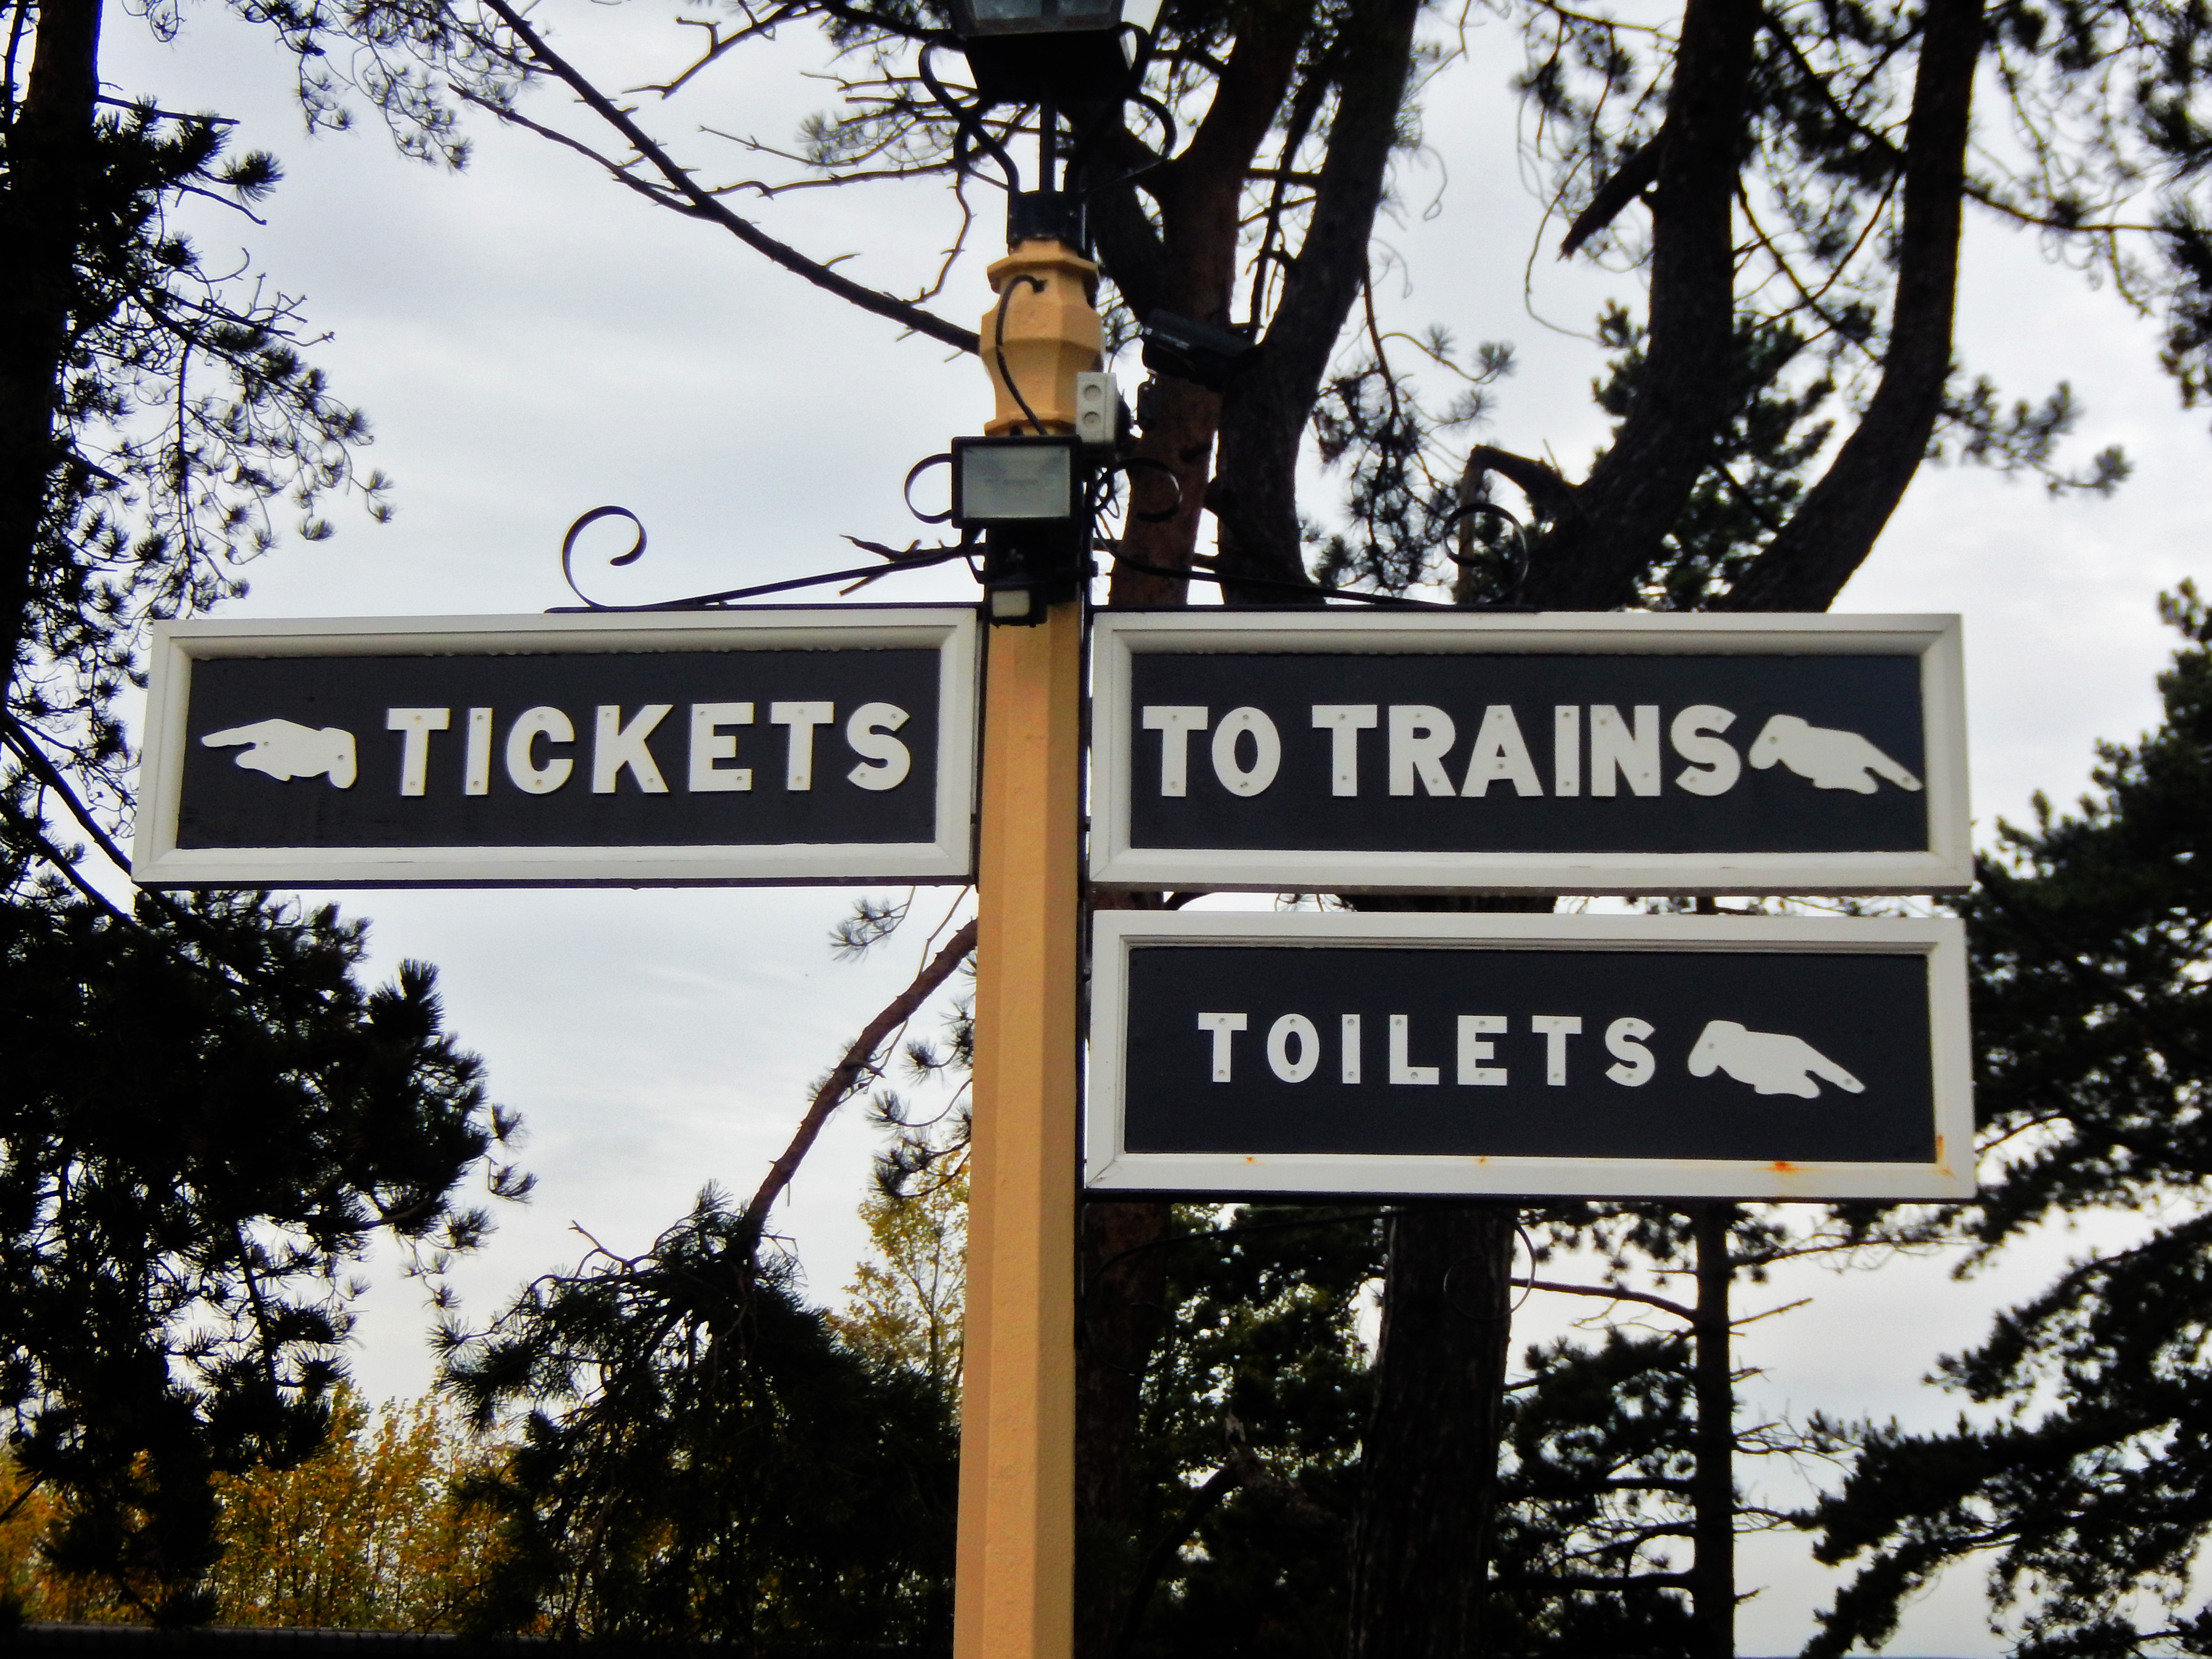 Gloucestershire Warwickshire Steam Railway - Signpost - This Steam Train Stops at Hogwarts...Right!?